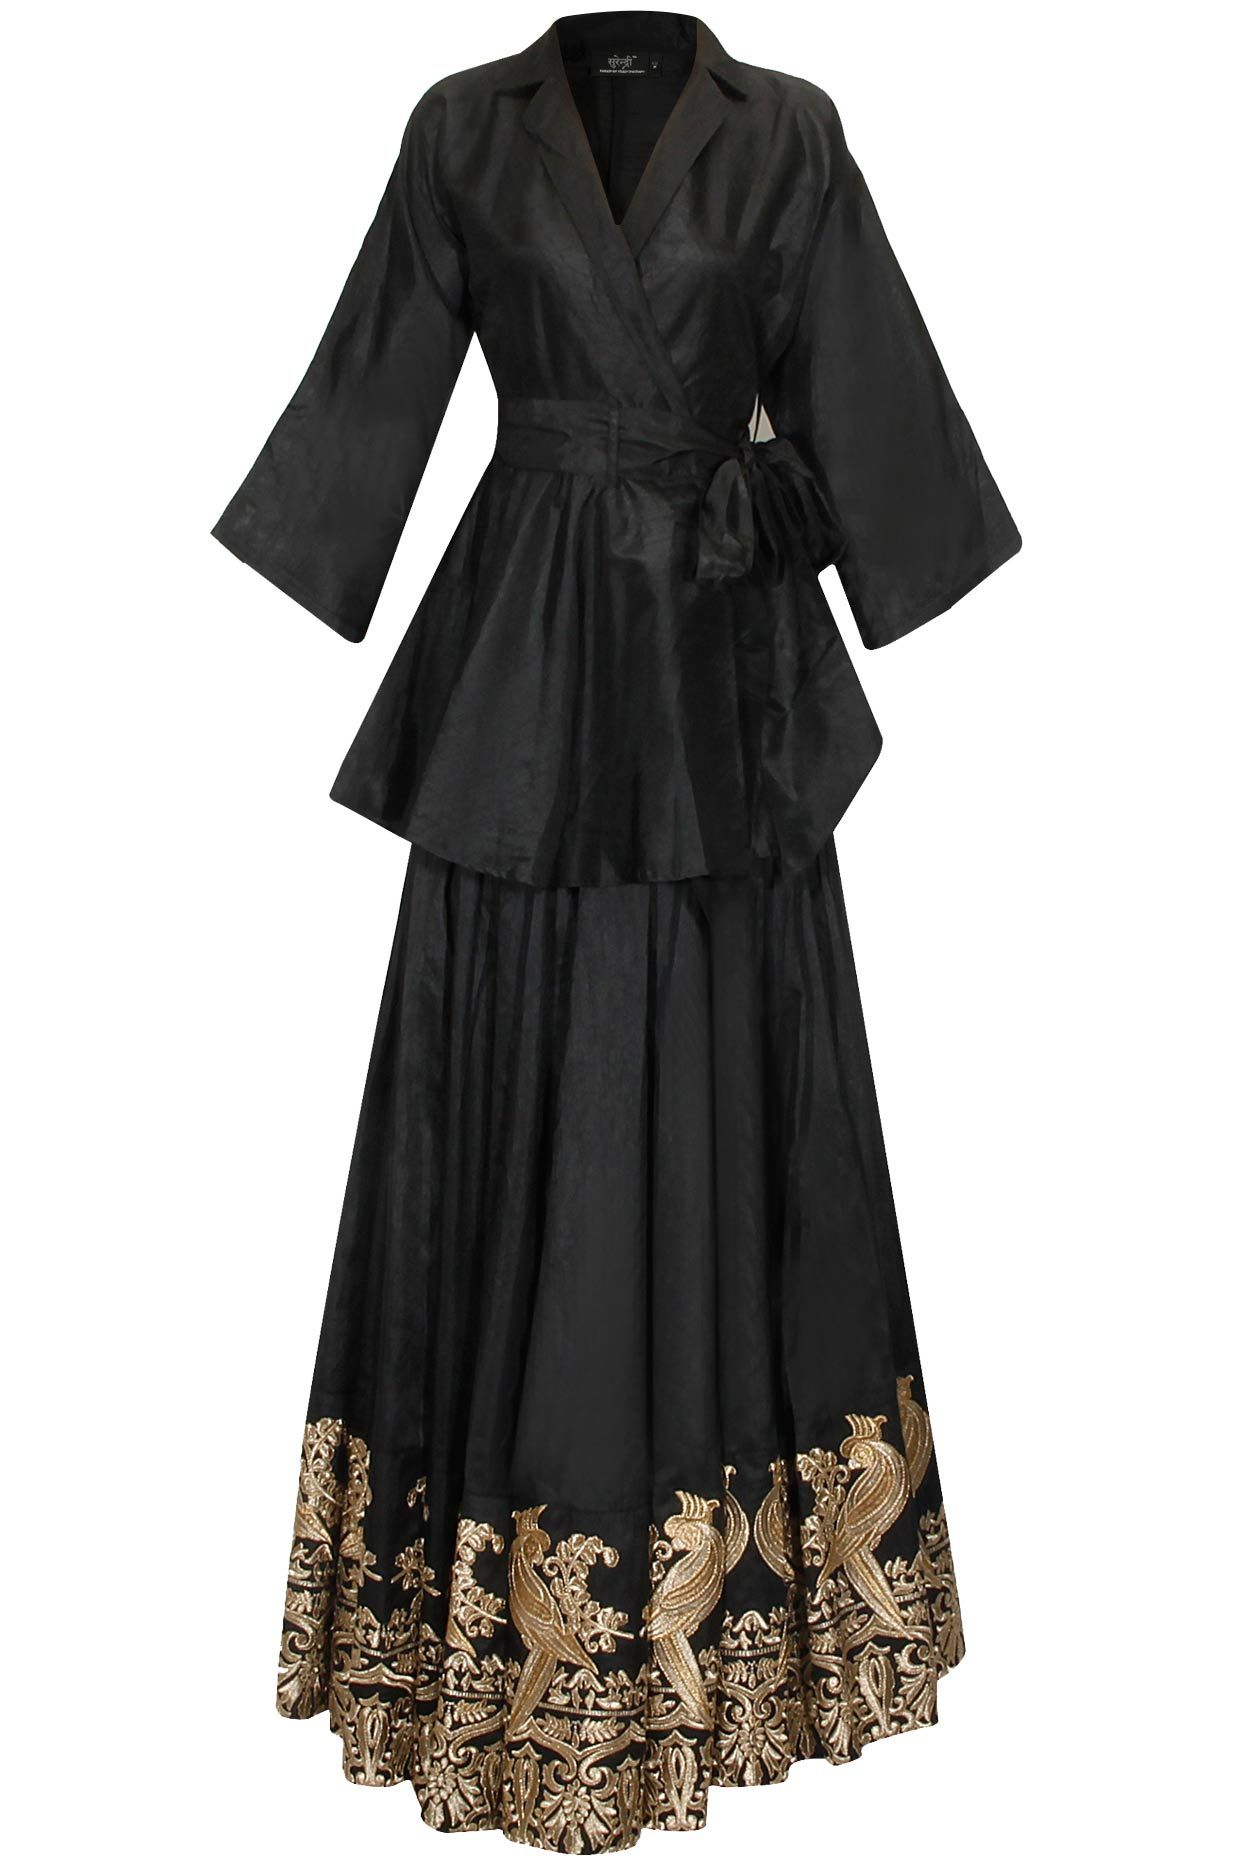 Black mithu embroidered lehenga set with trench coat available only